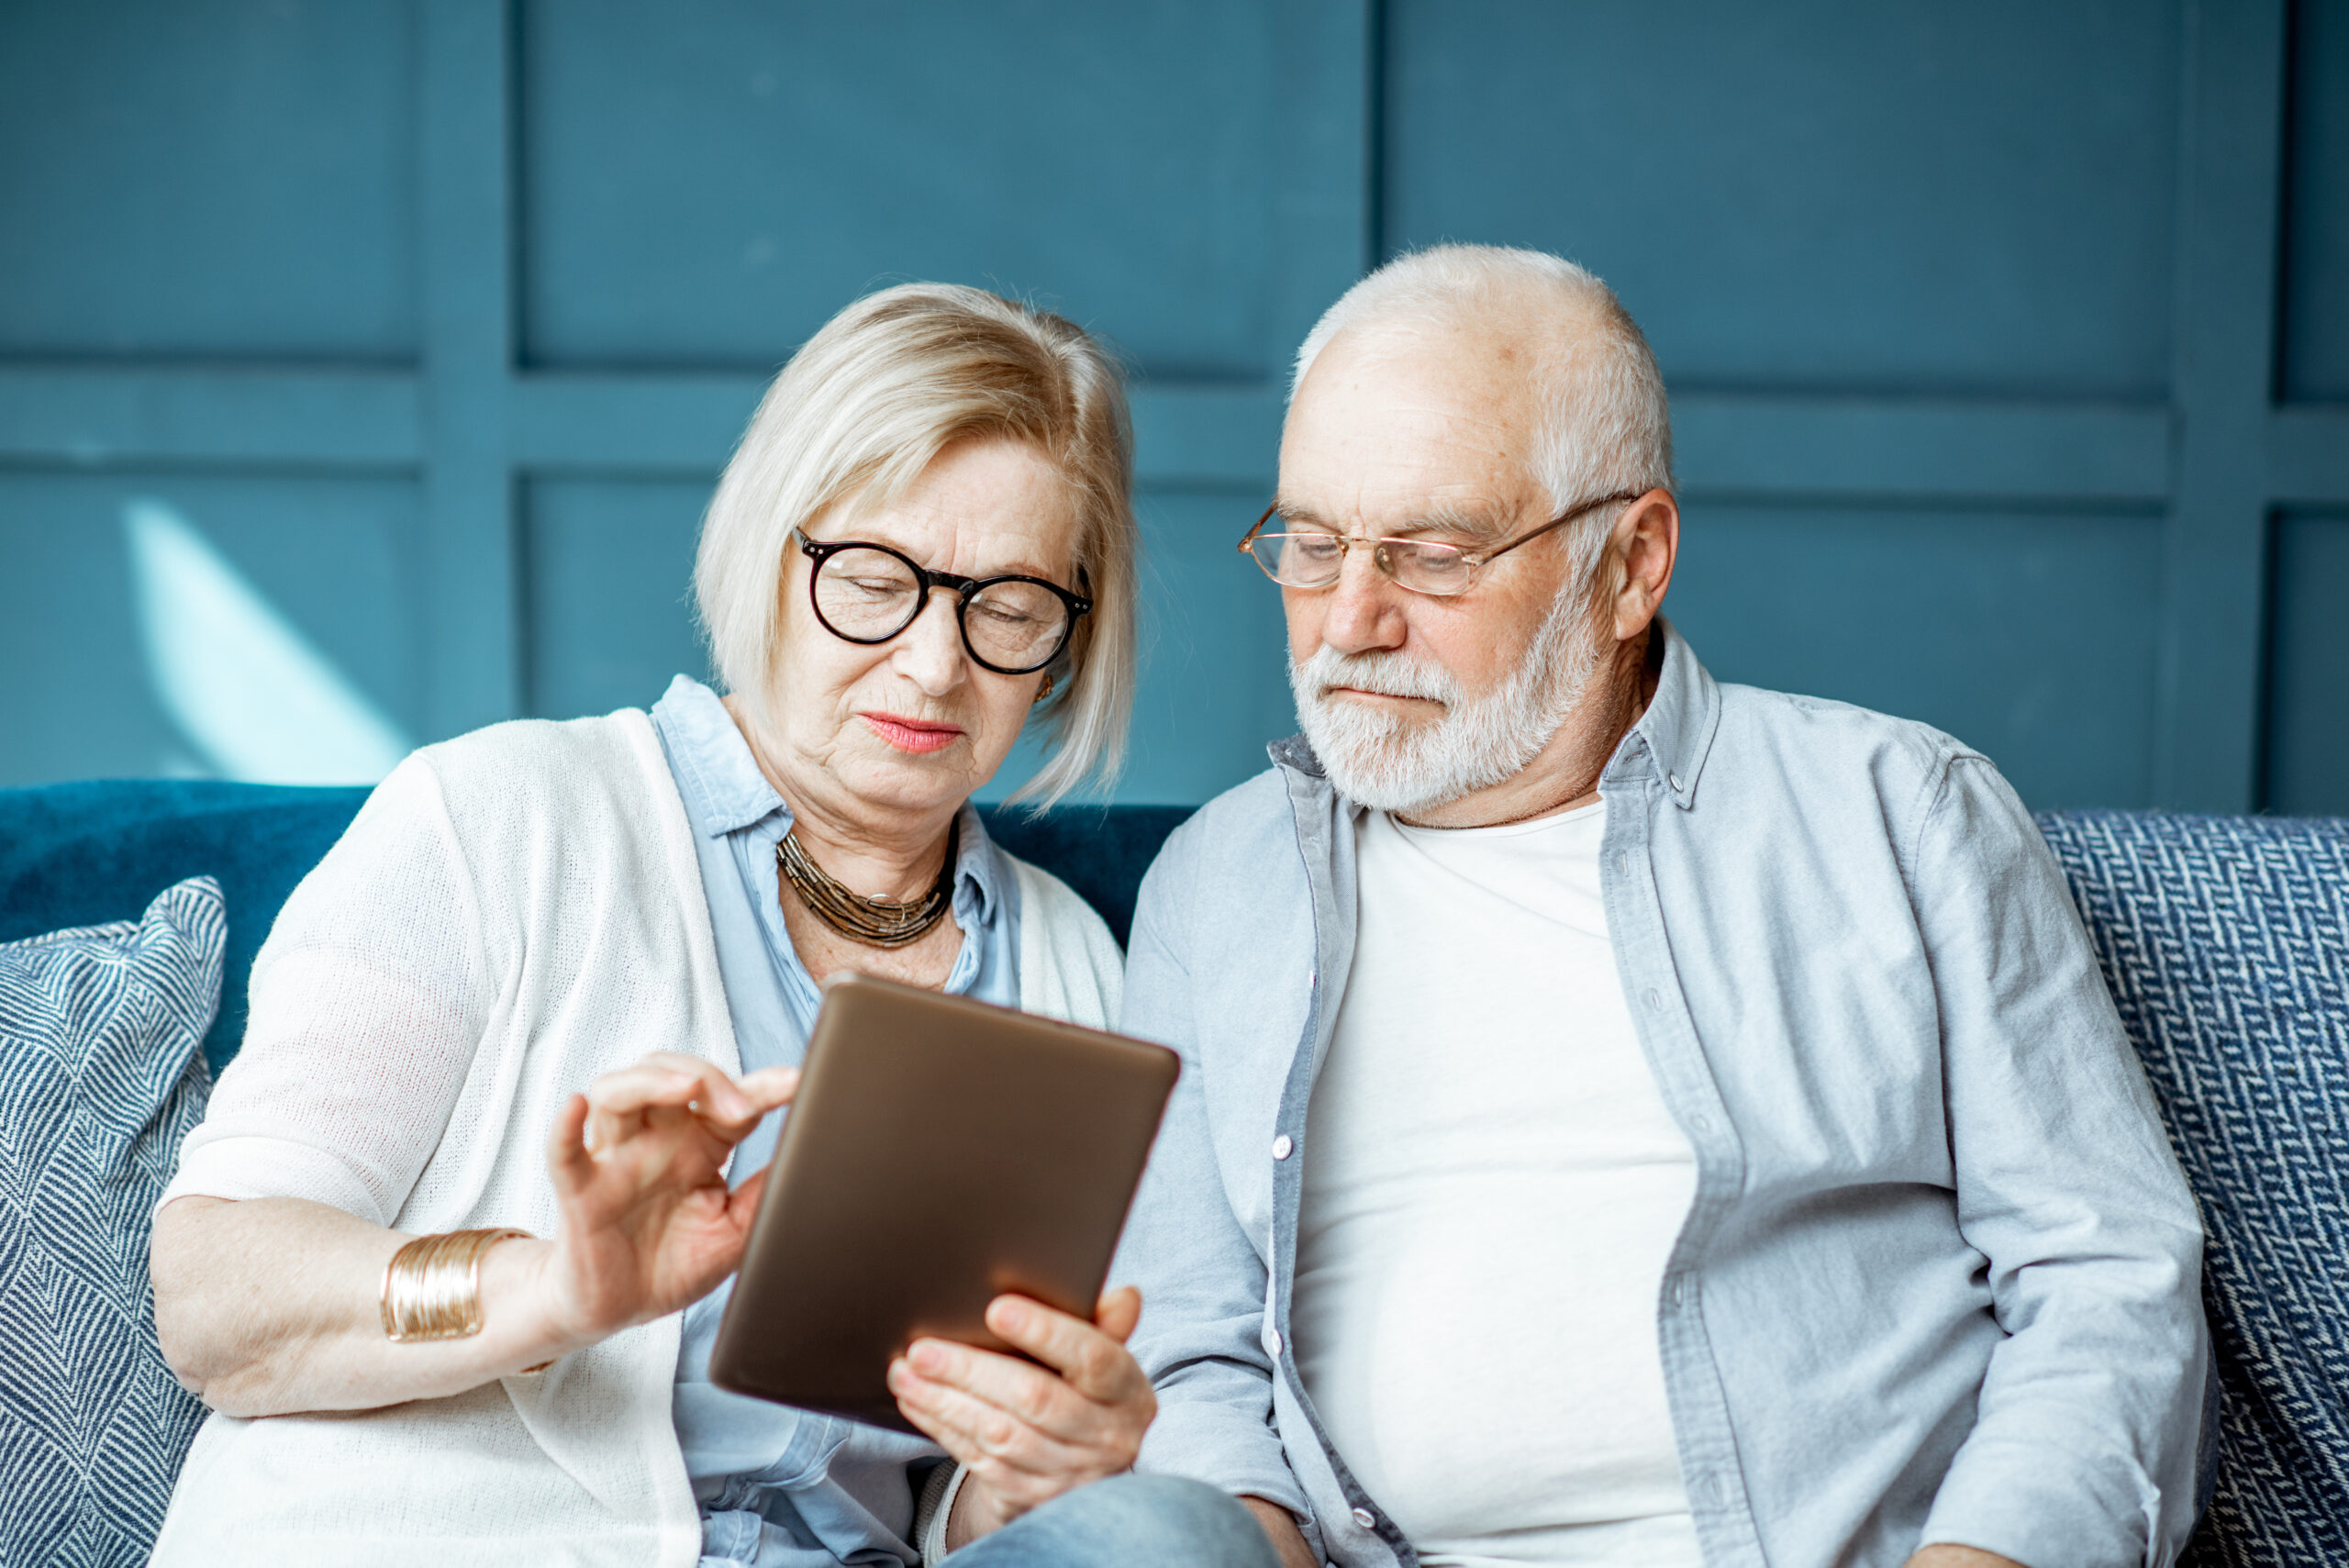 Be smart when searching online for health information